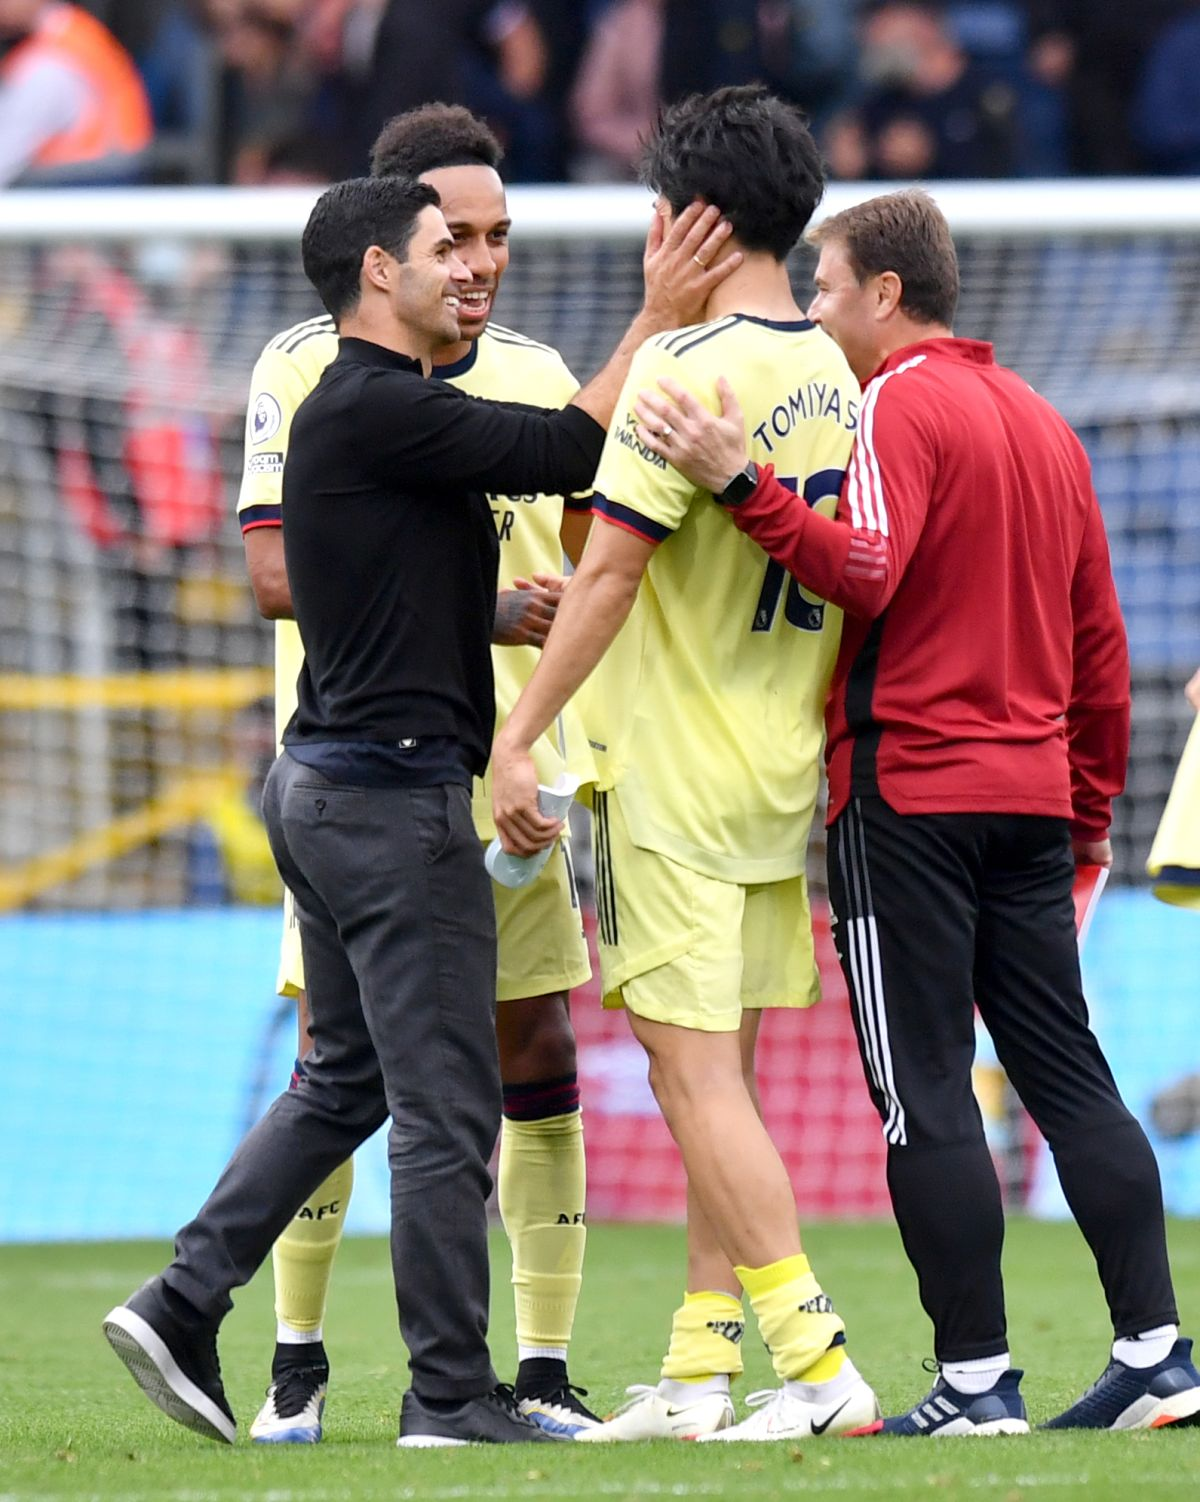 Mikel Arteta impressed with Arsenal's battling qualities in win at Burnley